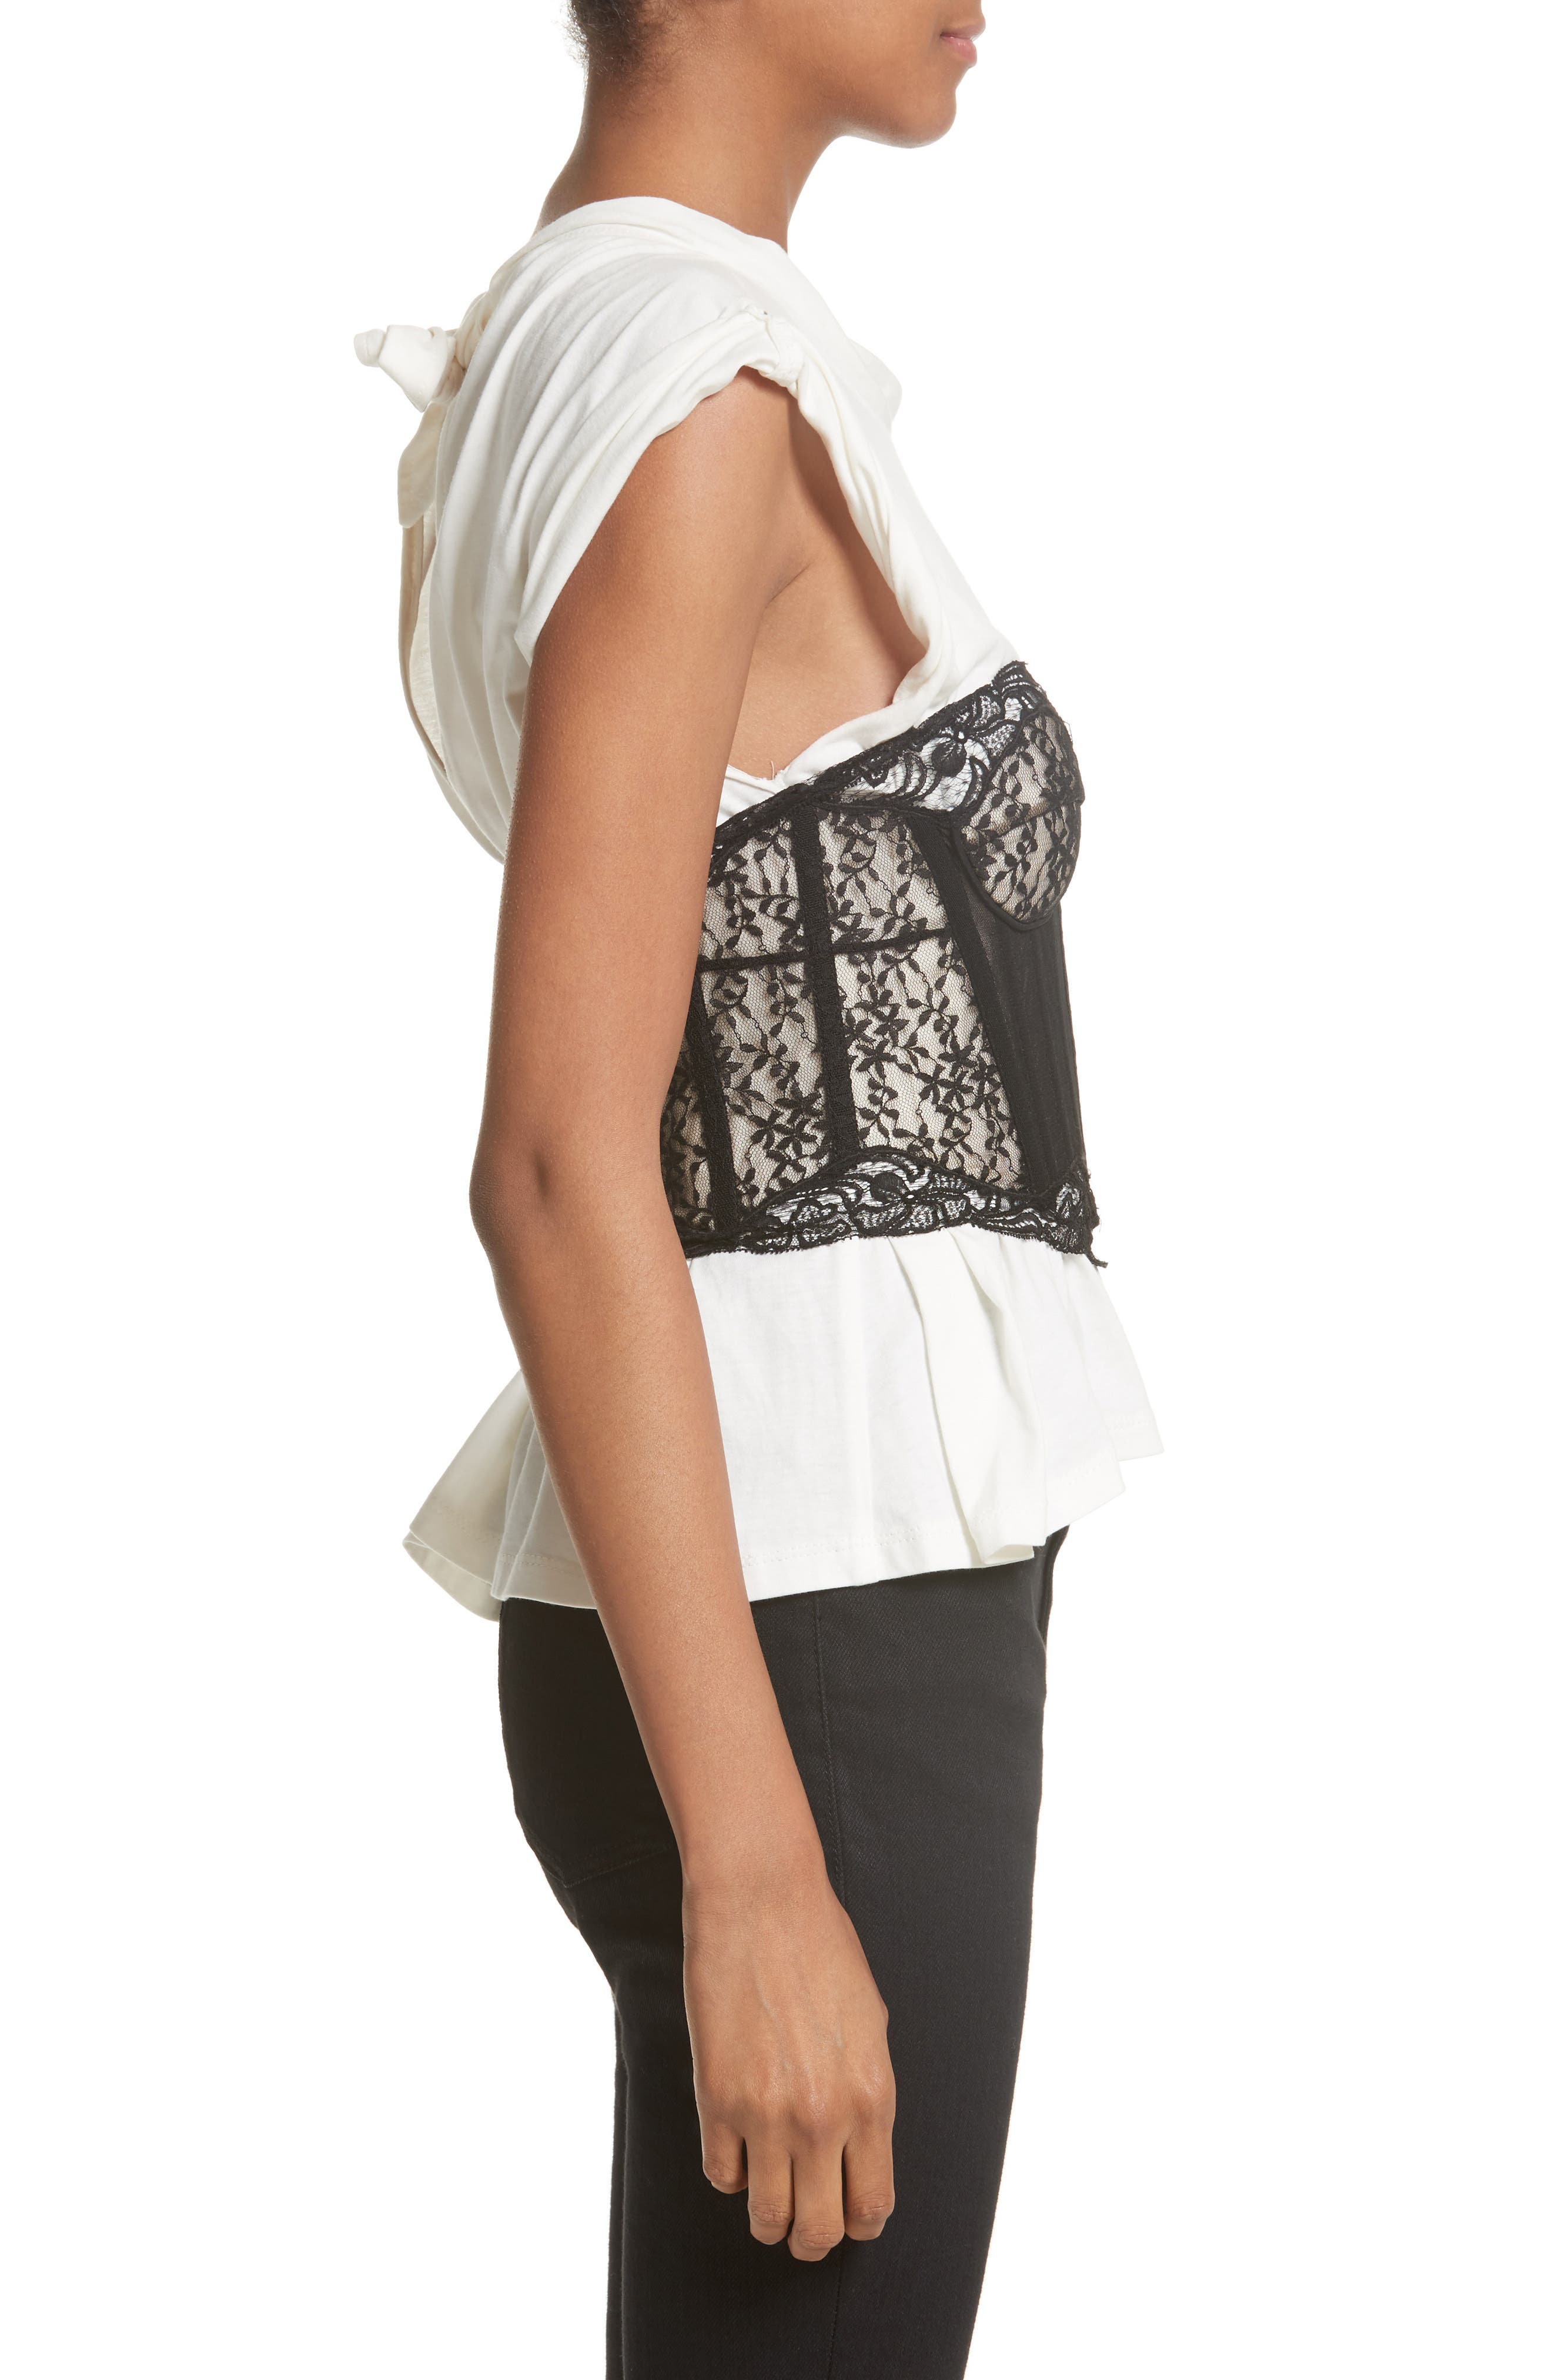 Cotton Top with Lace Bustier,                             Alternate thumbnail 3, color,                             Ivory